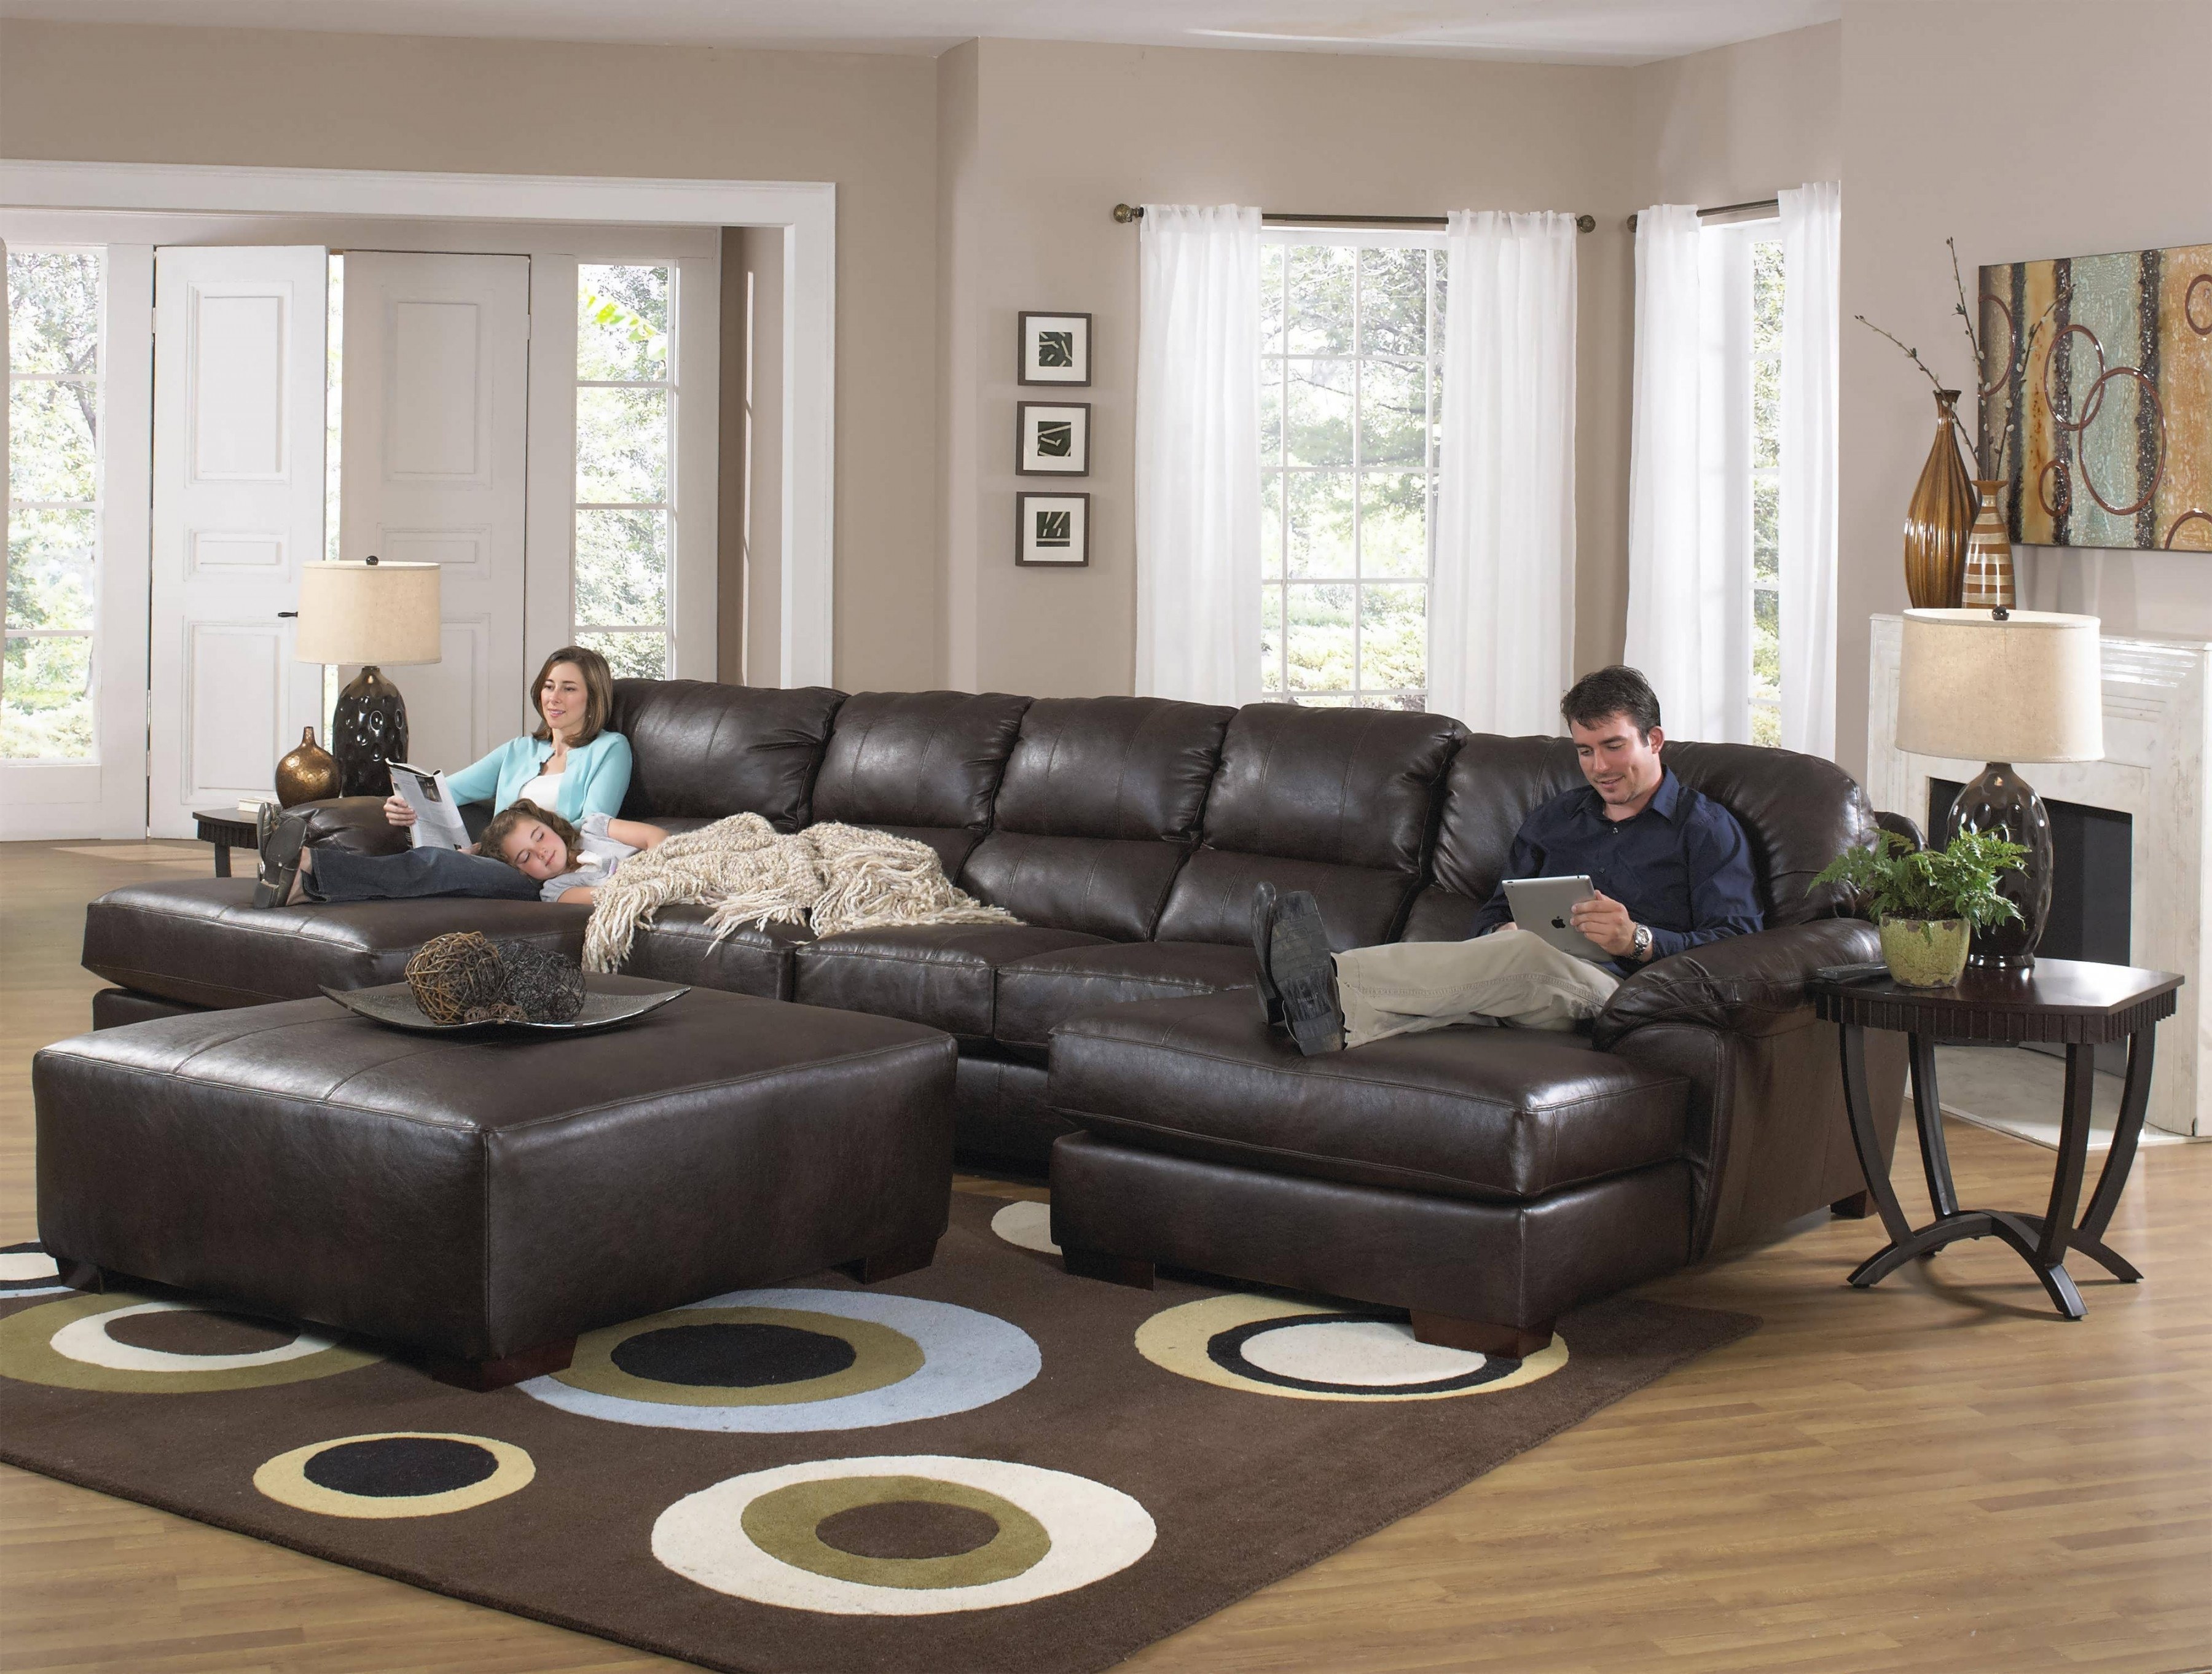 Sofa : U Shaped Sofa Reclining Sectional With Chaise Sleeper | Home For Reclining U Shaped Sectionals (Image 9 of 10)